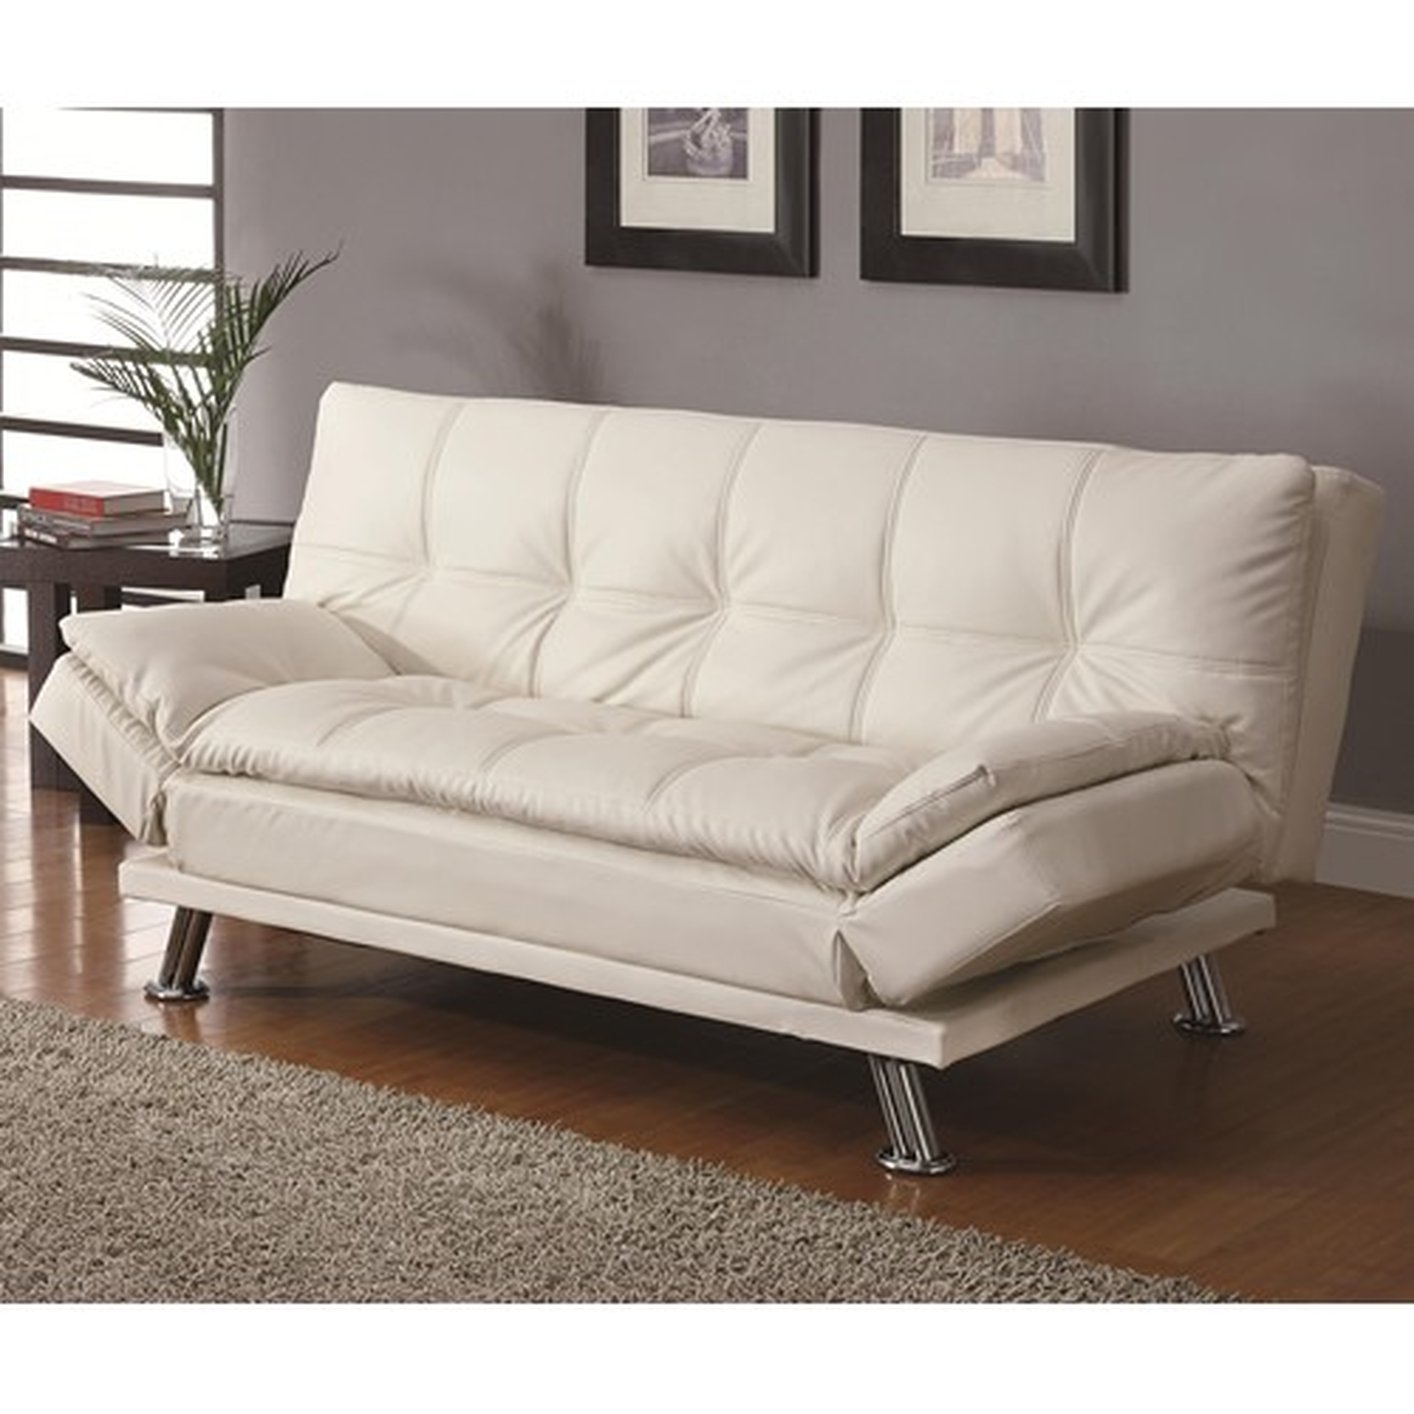 White Leather Sectional Sofa Bed: Coaster Dilleston 300291 White Leather Sofa Bed